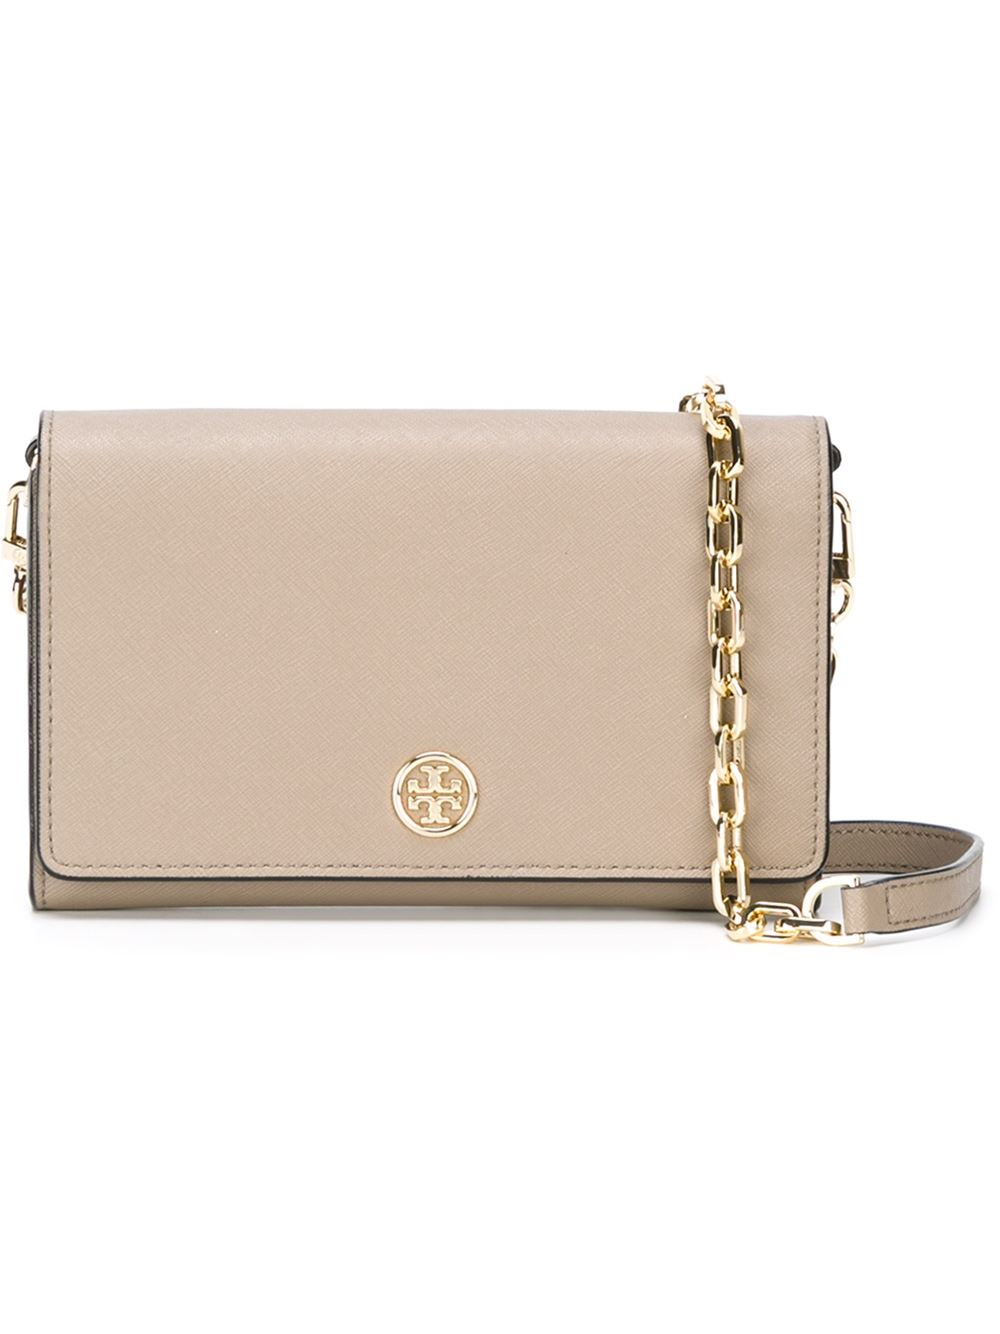 Rebecca Minkoff creations are loved by many fashion celebs such as Keira Knightley.